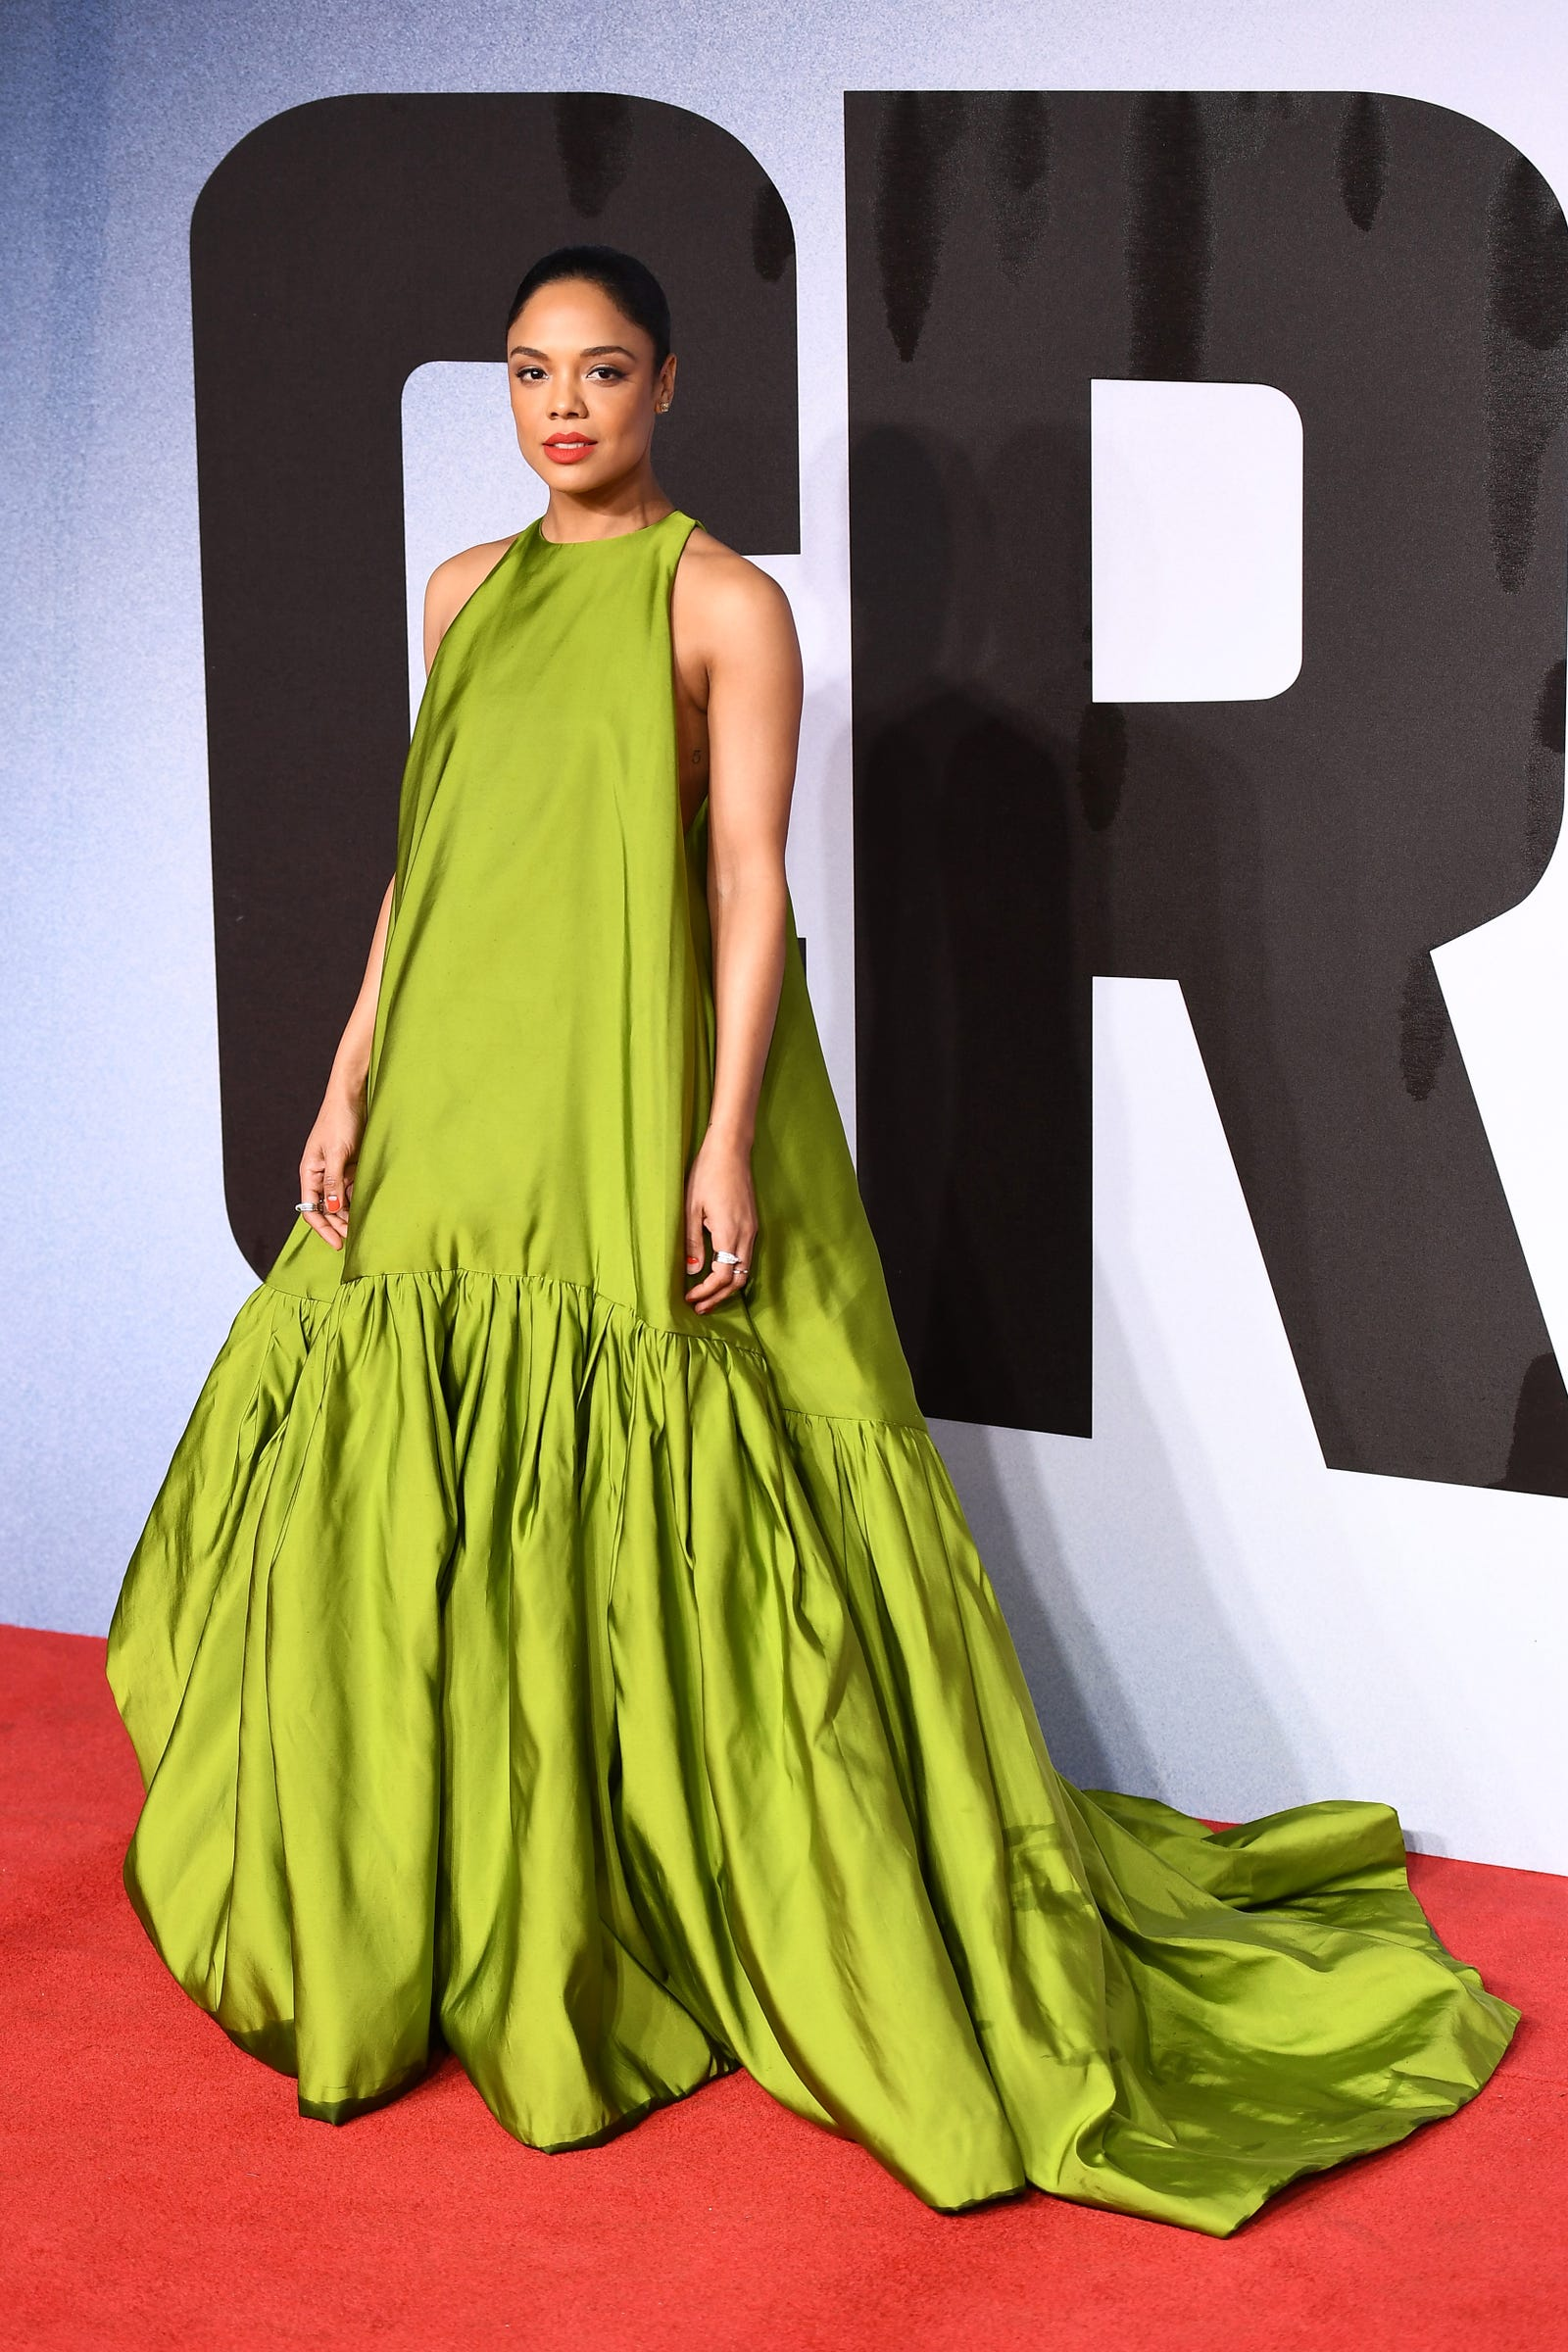 Tessa Thompson attends the European Premiere of 'Creed II' on November 28, 2018 in London, England.